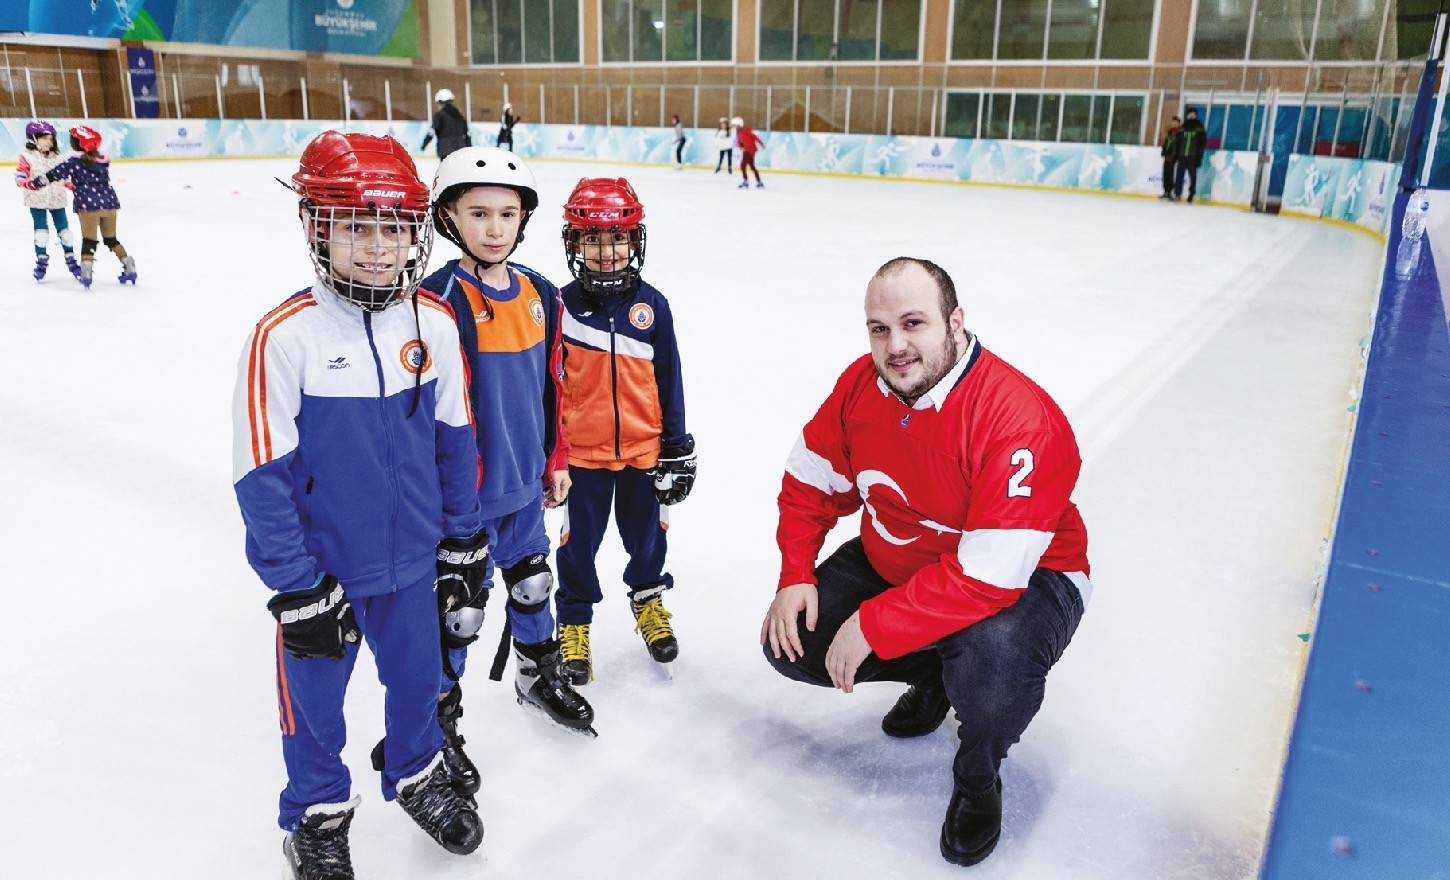 Halit Albayrak (R) spoke about the aspirations of the Turkish Ice Hockey Federation in an interview with Serkan u00dcnlu00fc at Silivrikapu0131 Ice Hockey Hall where young players train to be future stars.